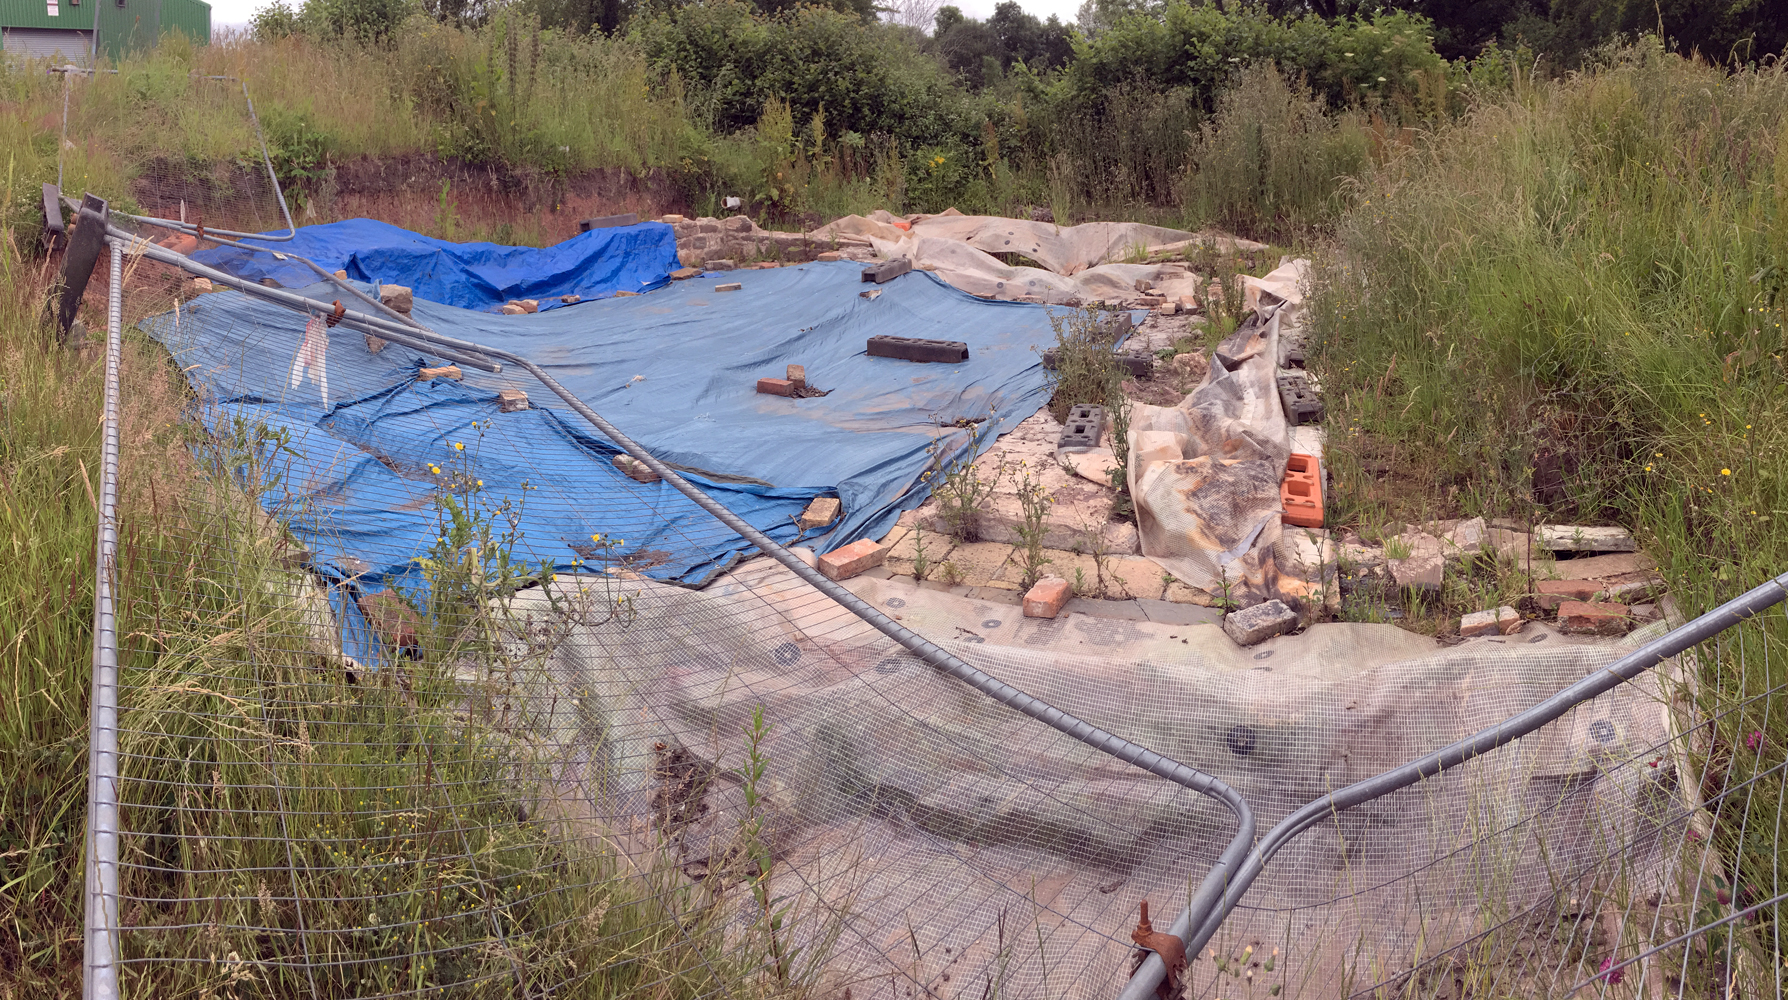 View of the site before work commenced